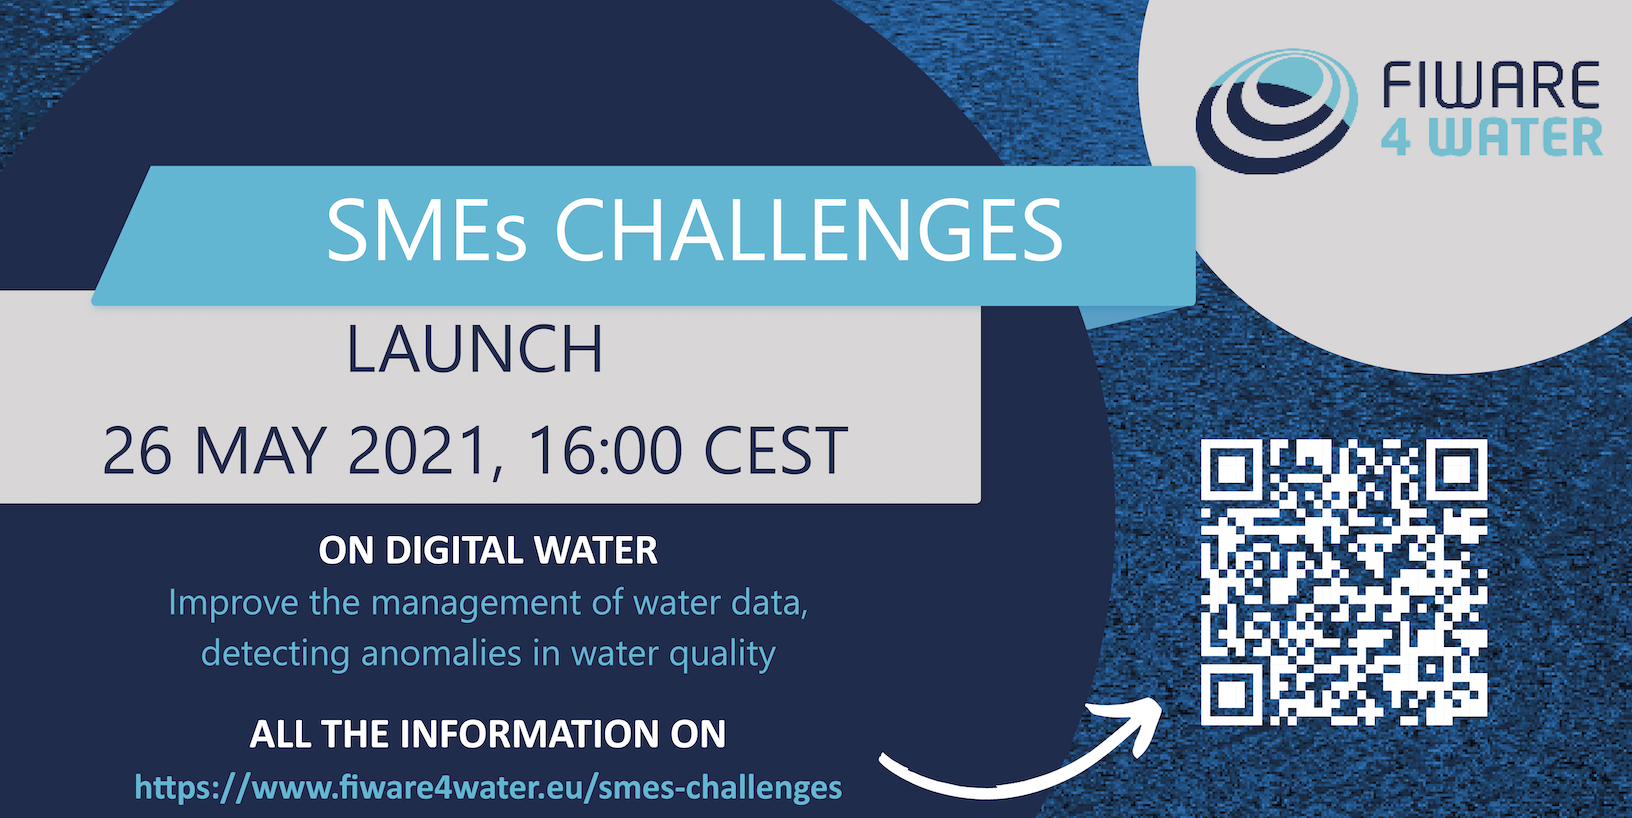 Fiware4Water launches its SMEs Challenges